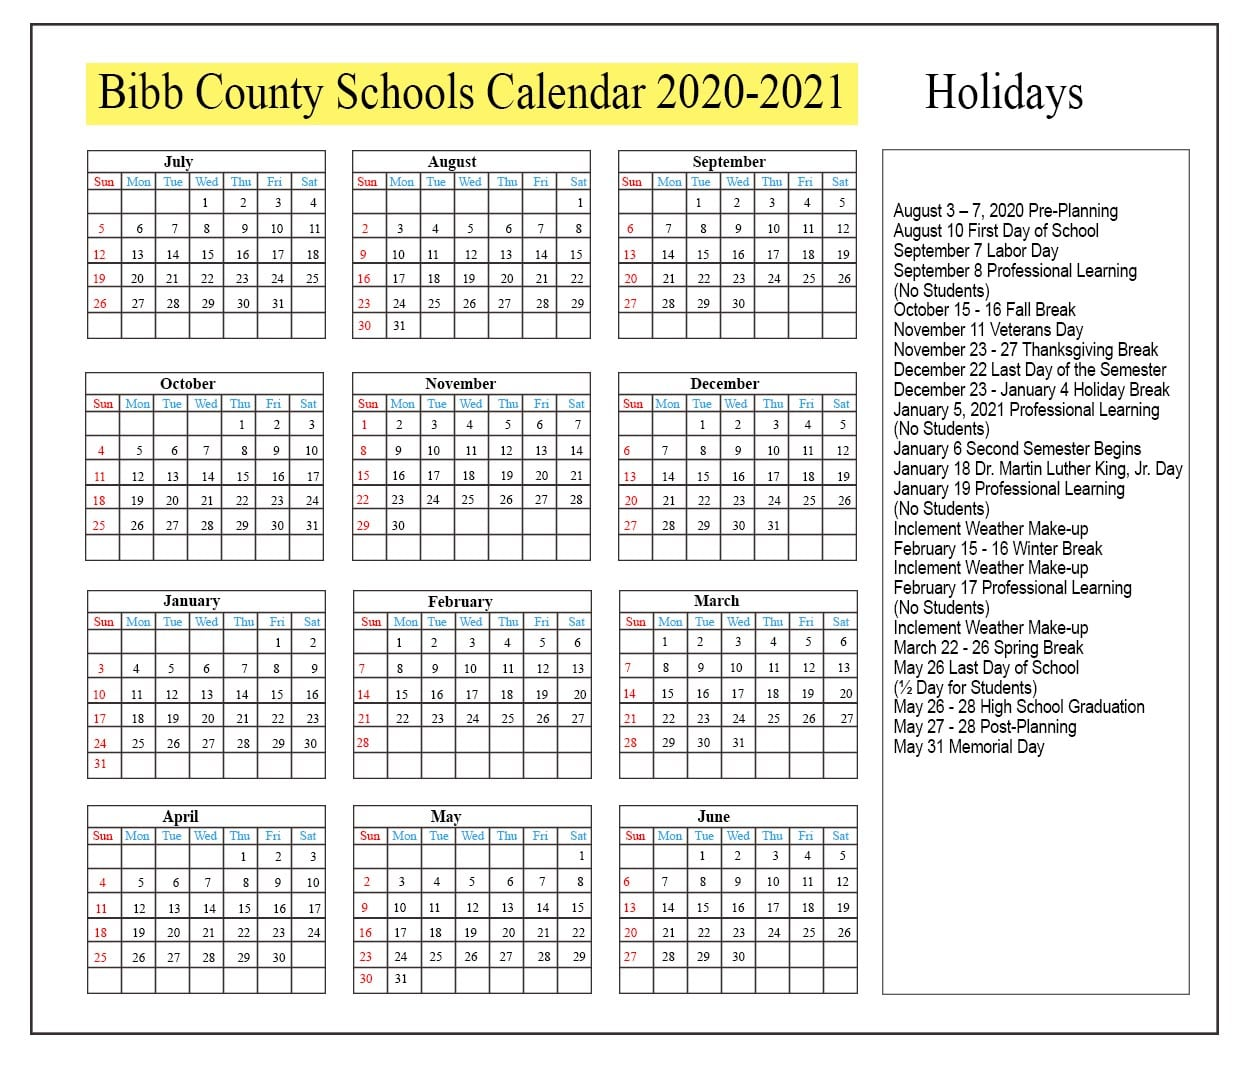 Bibb County School Terms